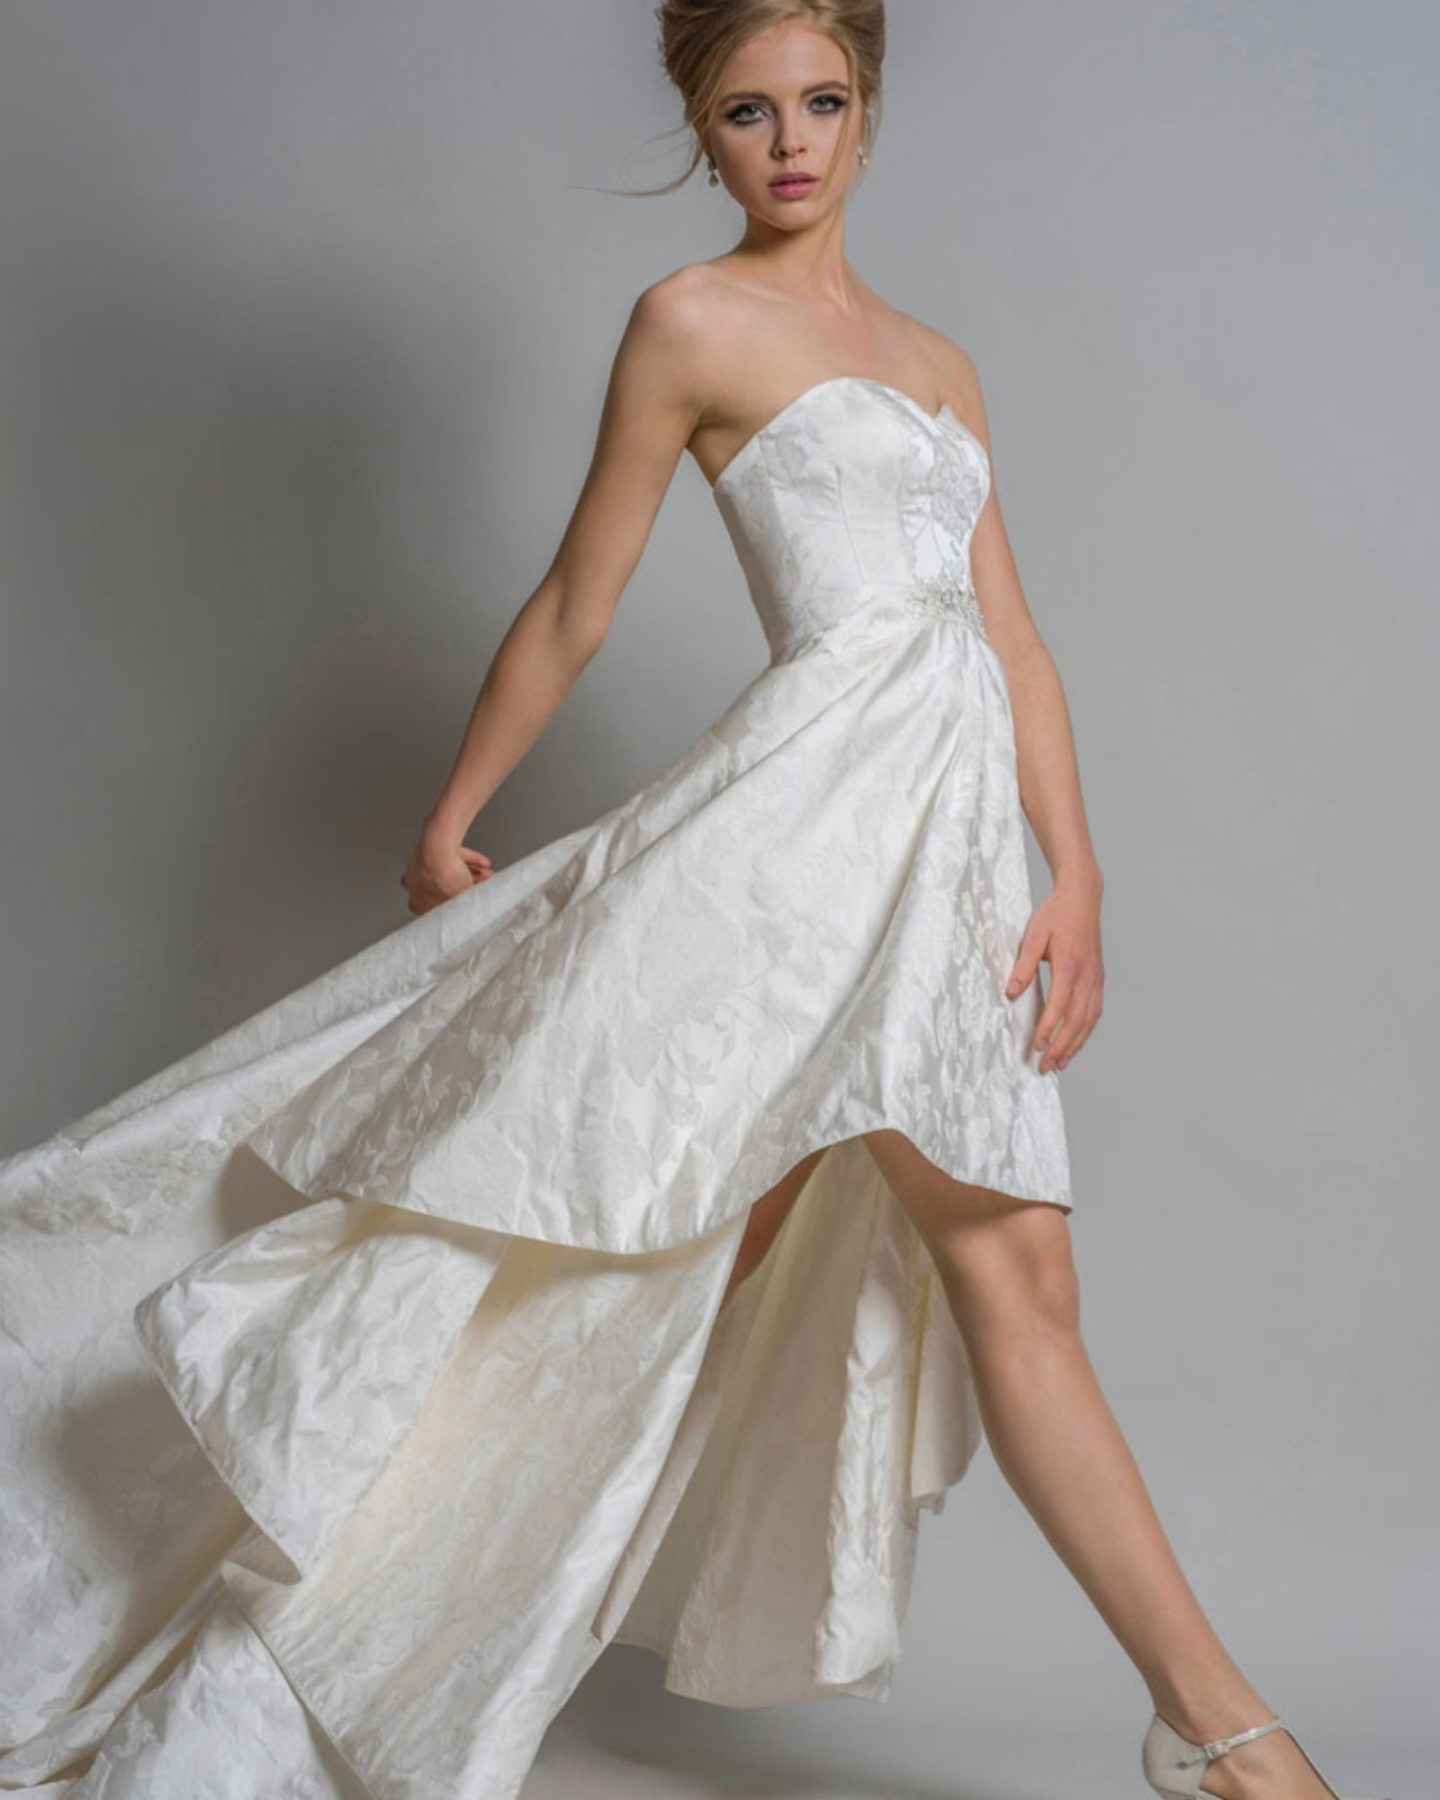 Glamorous wedding dress by Louise Bentley, available at Boho Bride